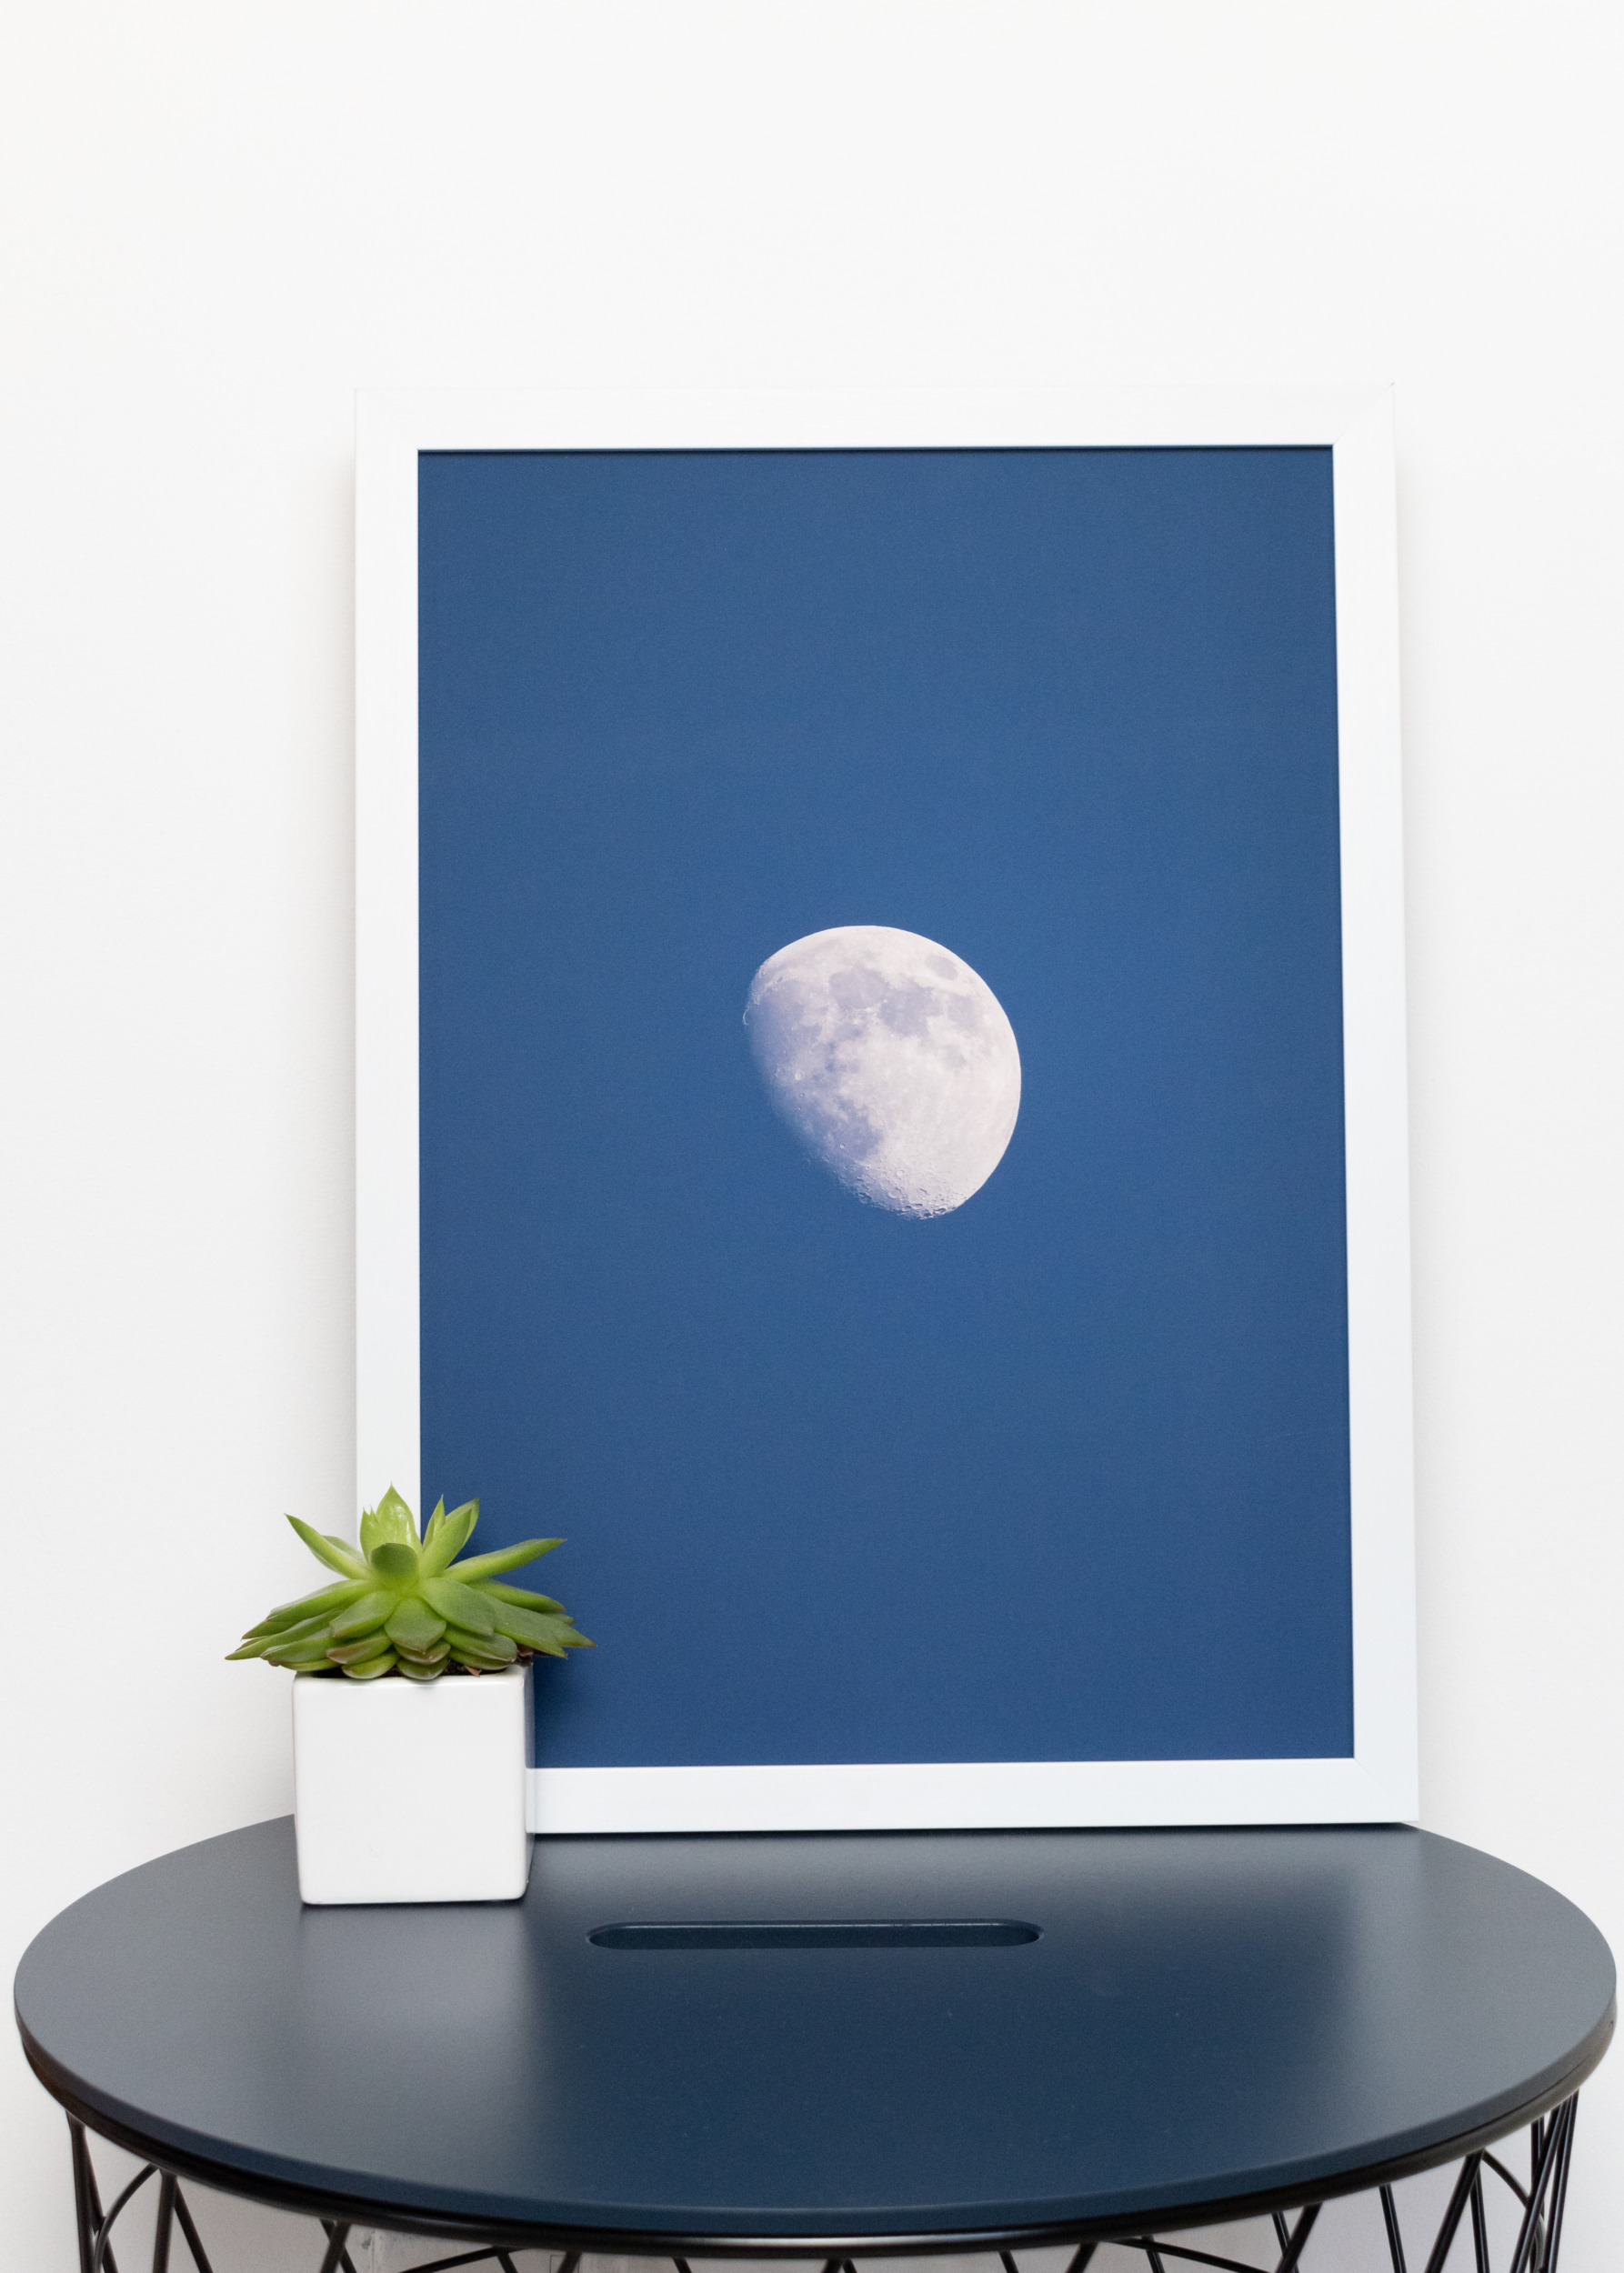 Framed A3 Victoria Broad Photography print of waxing gibbous moon, in white frame.